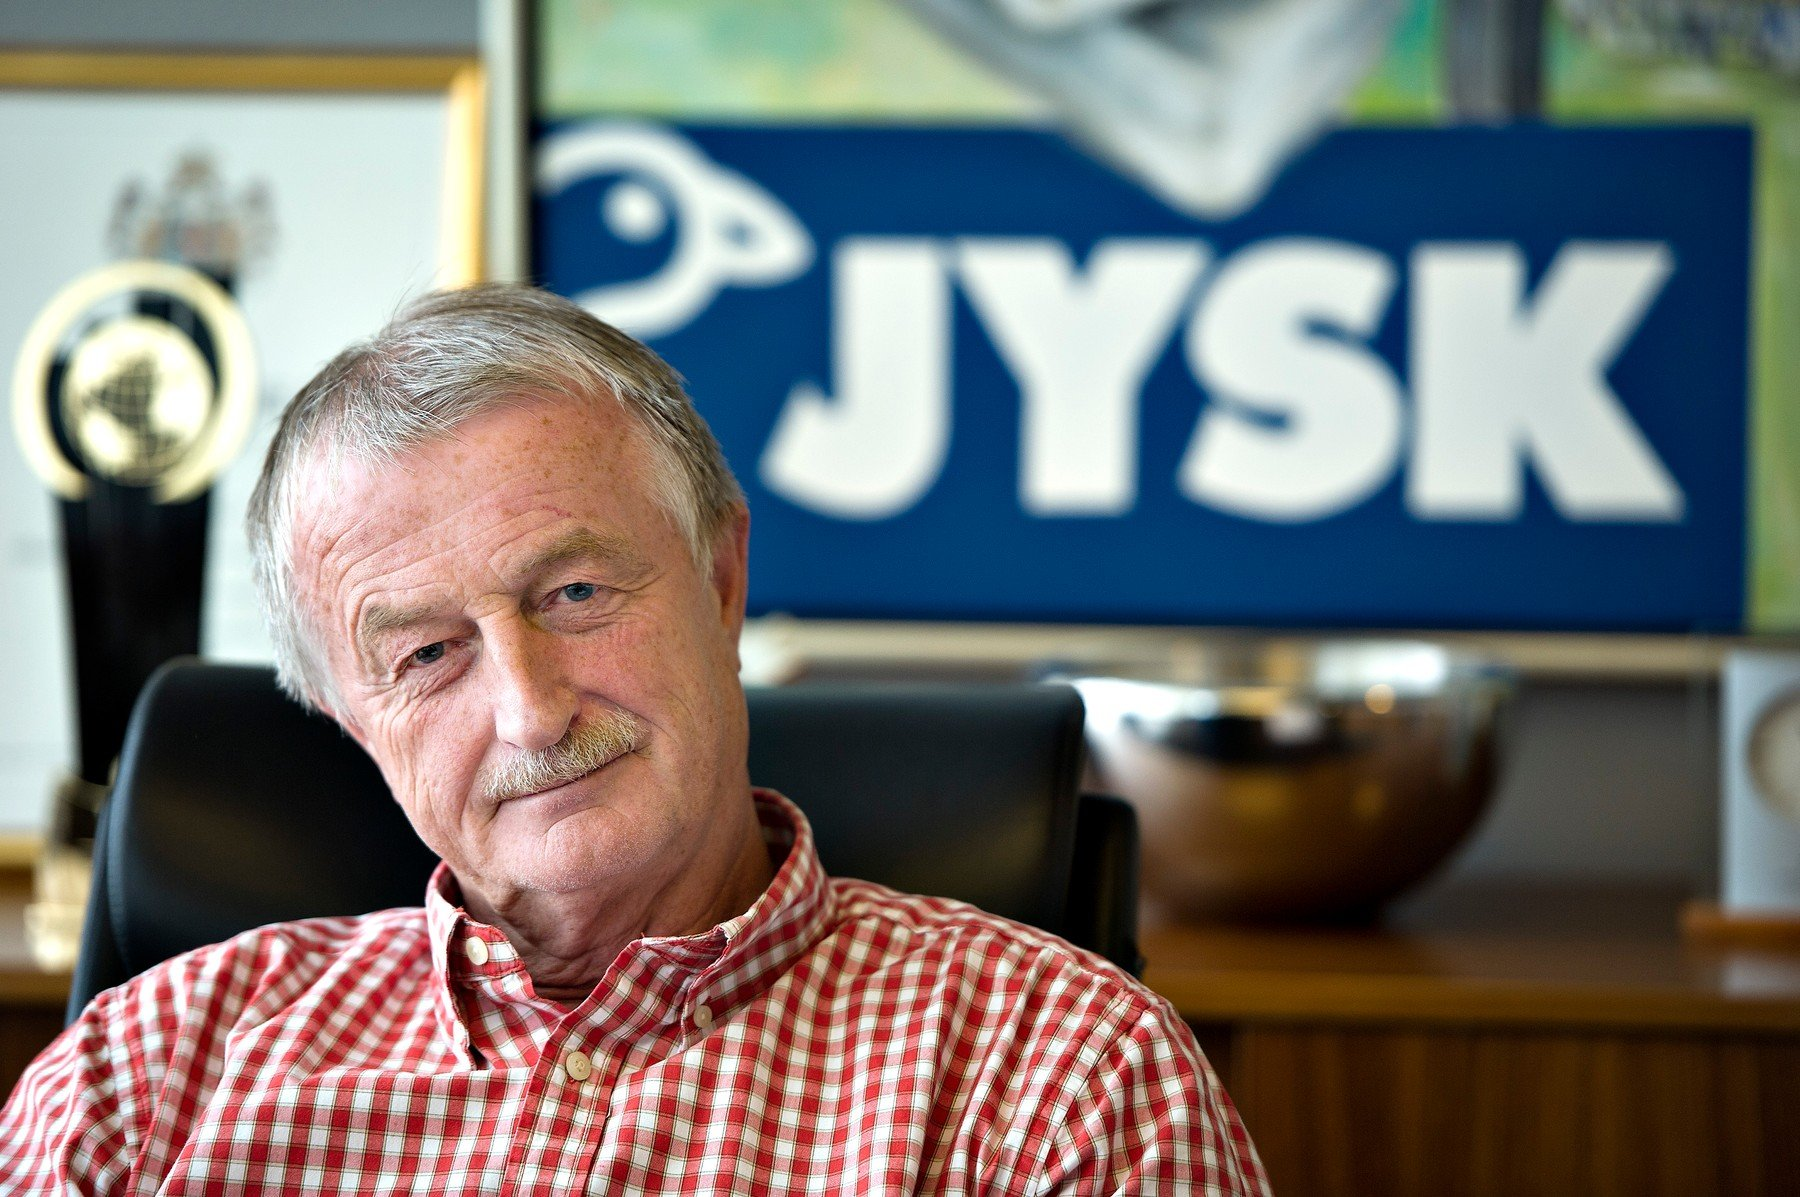 This picture taken on May 30, 2012 in Aarhus, Denmark, shows billionaire Lars Larsen, founder of retail chain Jysk.  Larsen, died at age 71 on August 19, 2019, the company said in a statement., Image: 466065085, License: Rights-managed, Restrictions: Denmark OUT, Model Release: no, Credit line: Profimedia, AFP